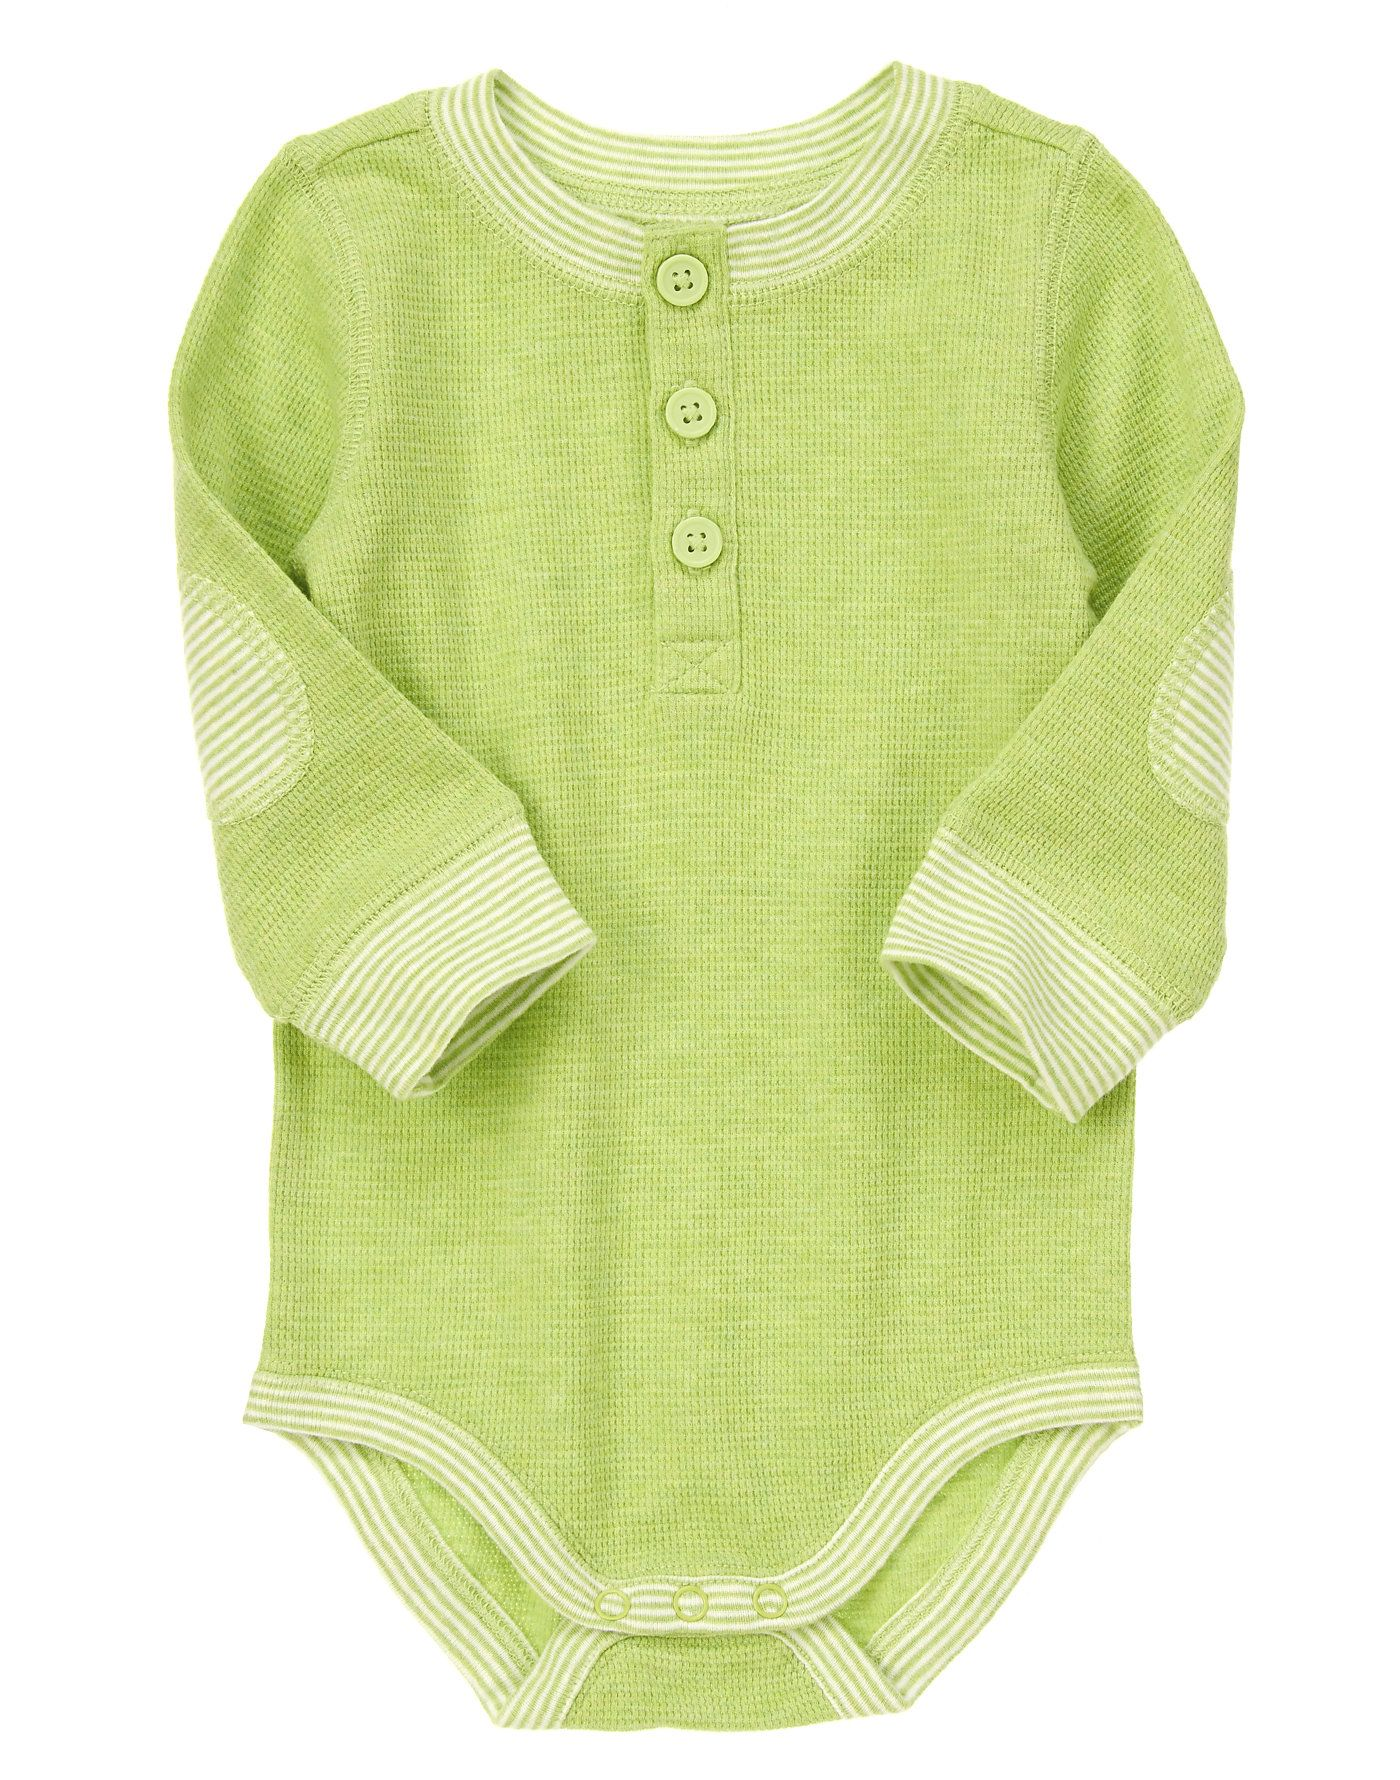 Essential bodysuit makes dressing baby super easy baby t